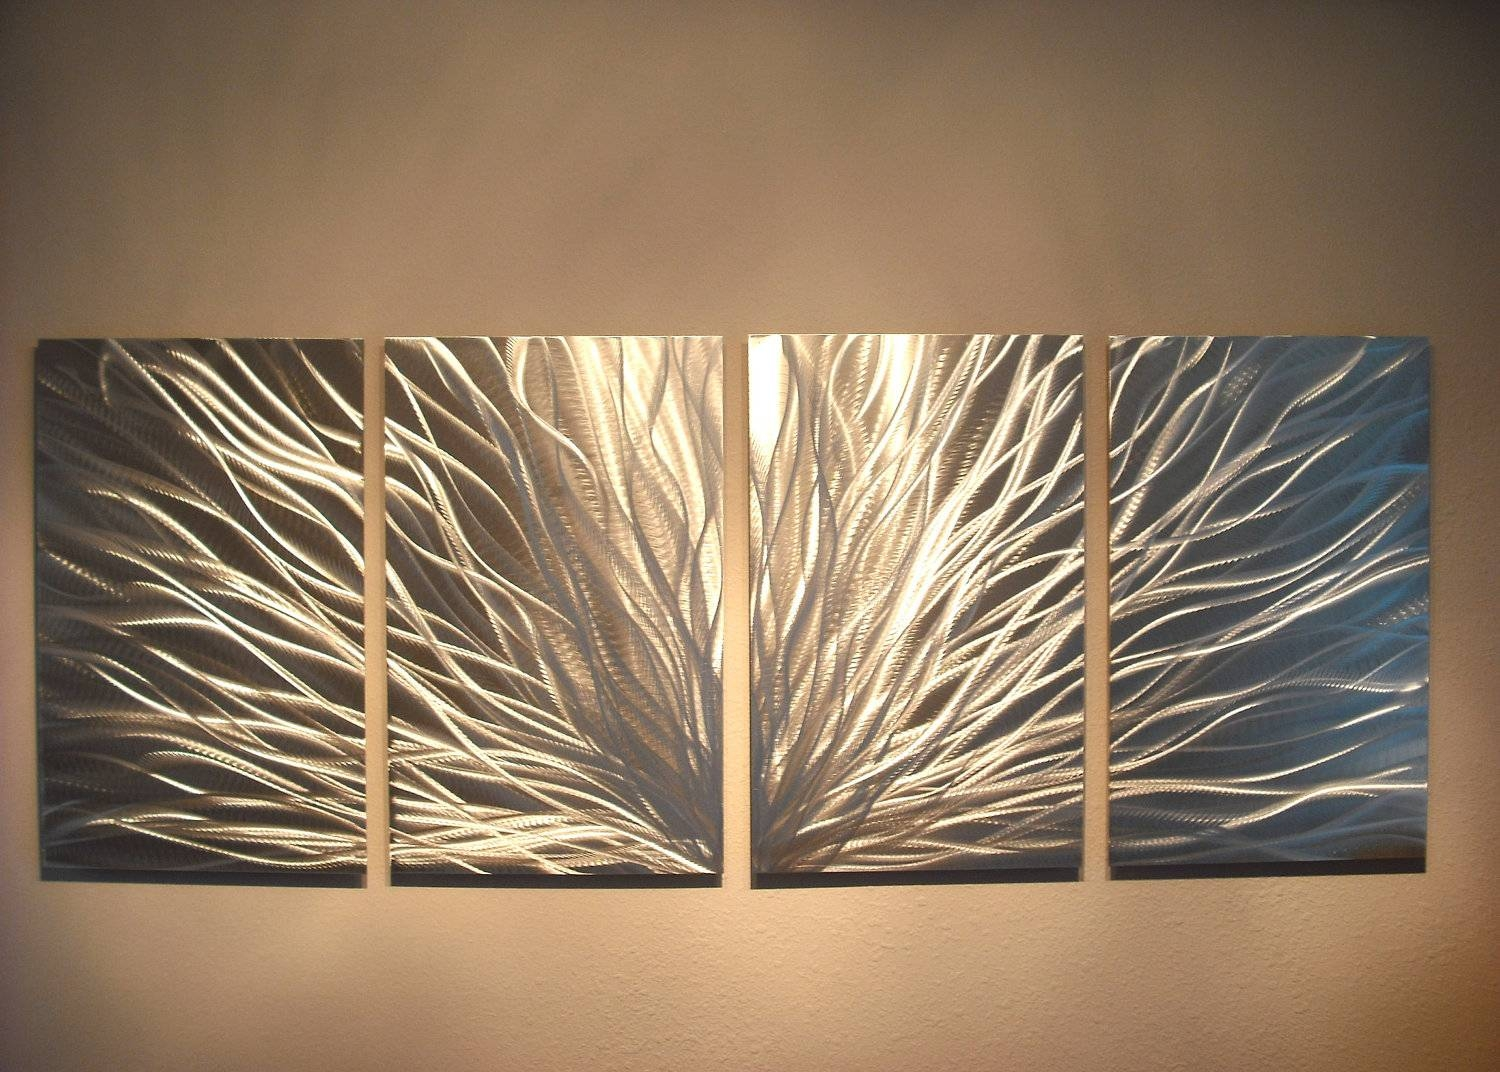 Radiance – Abstract Metal Wall Art Contemporary Modern Decor Pertaining To Current Metallic Wall Art (Gallery 6 of 25)